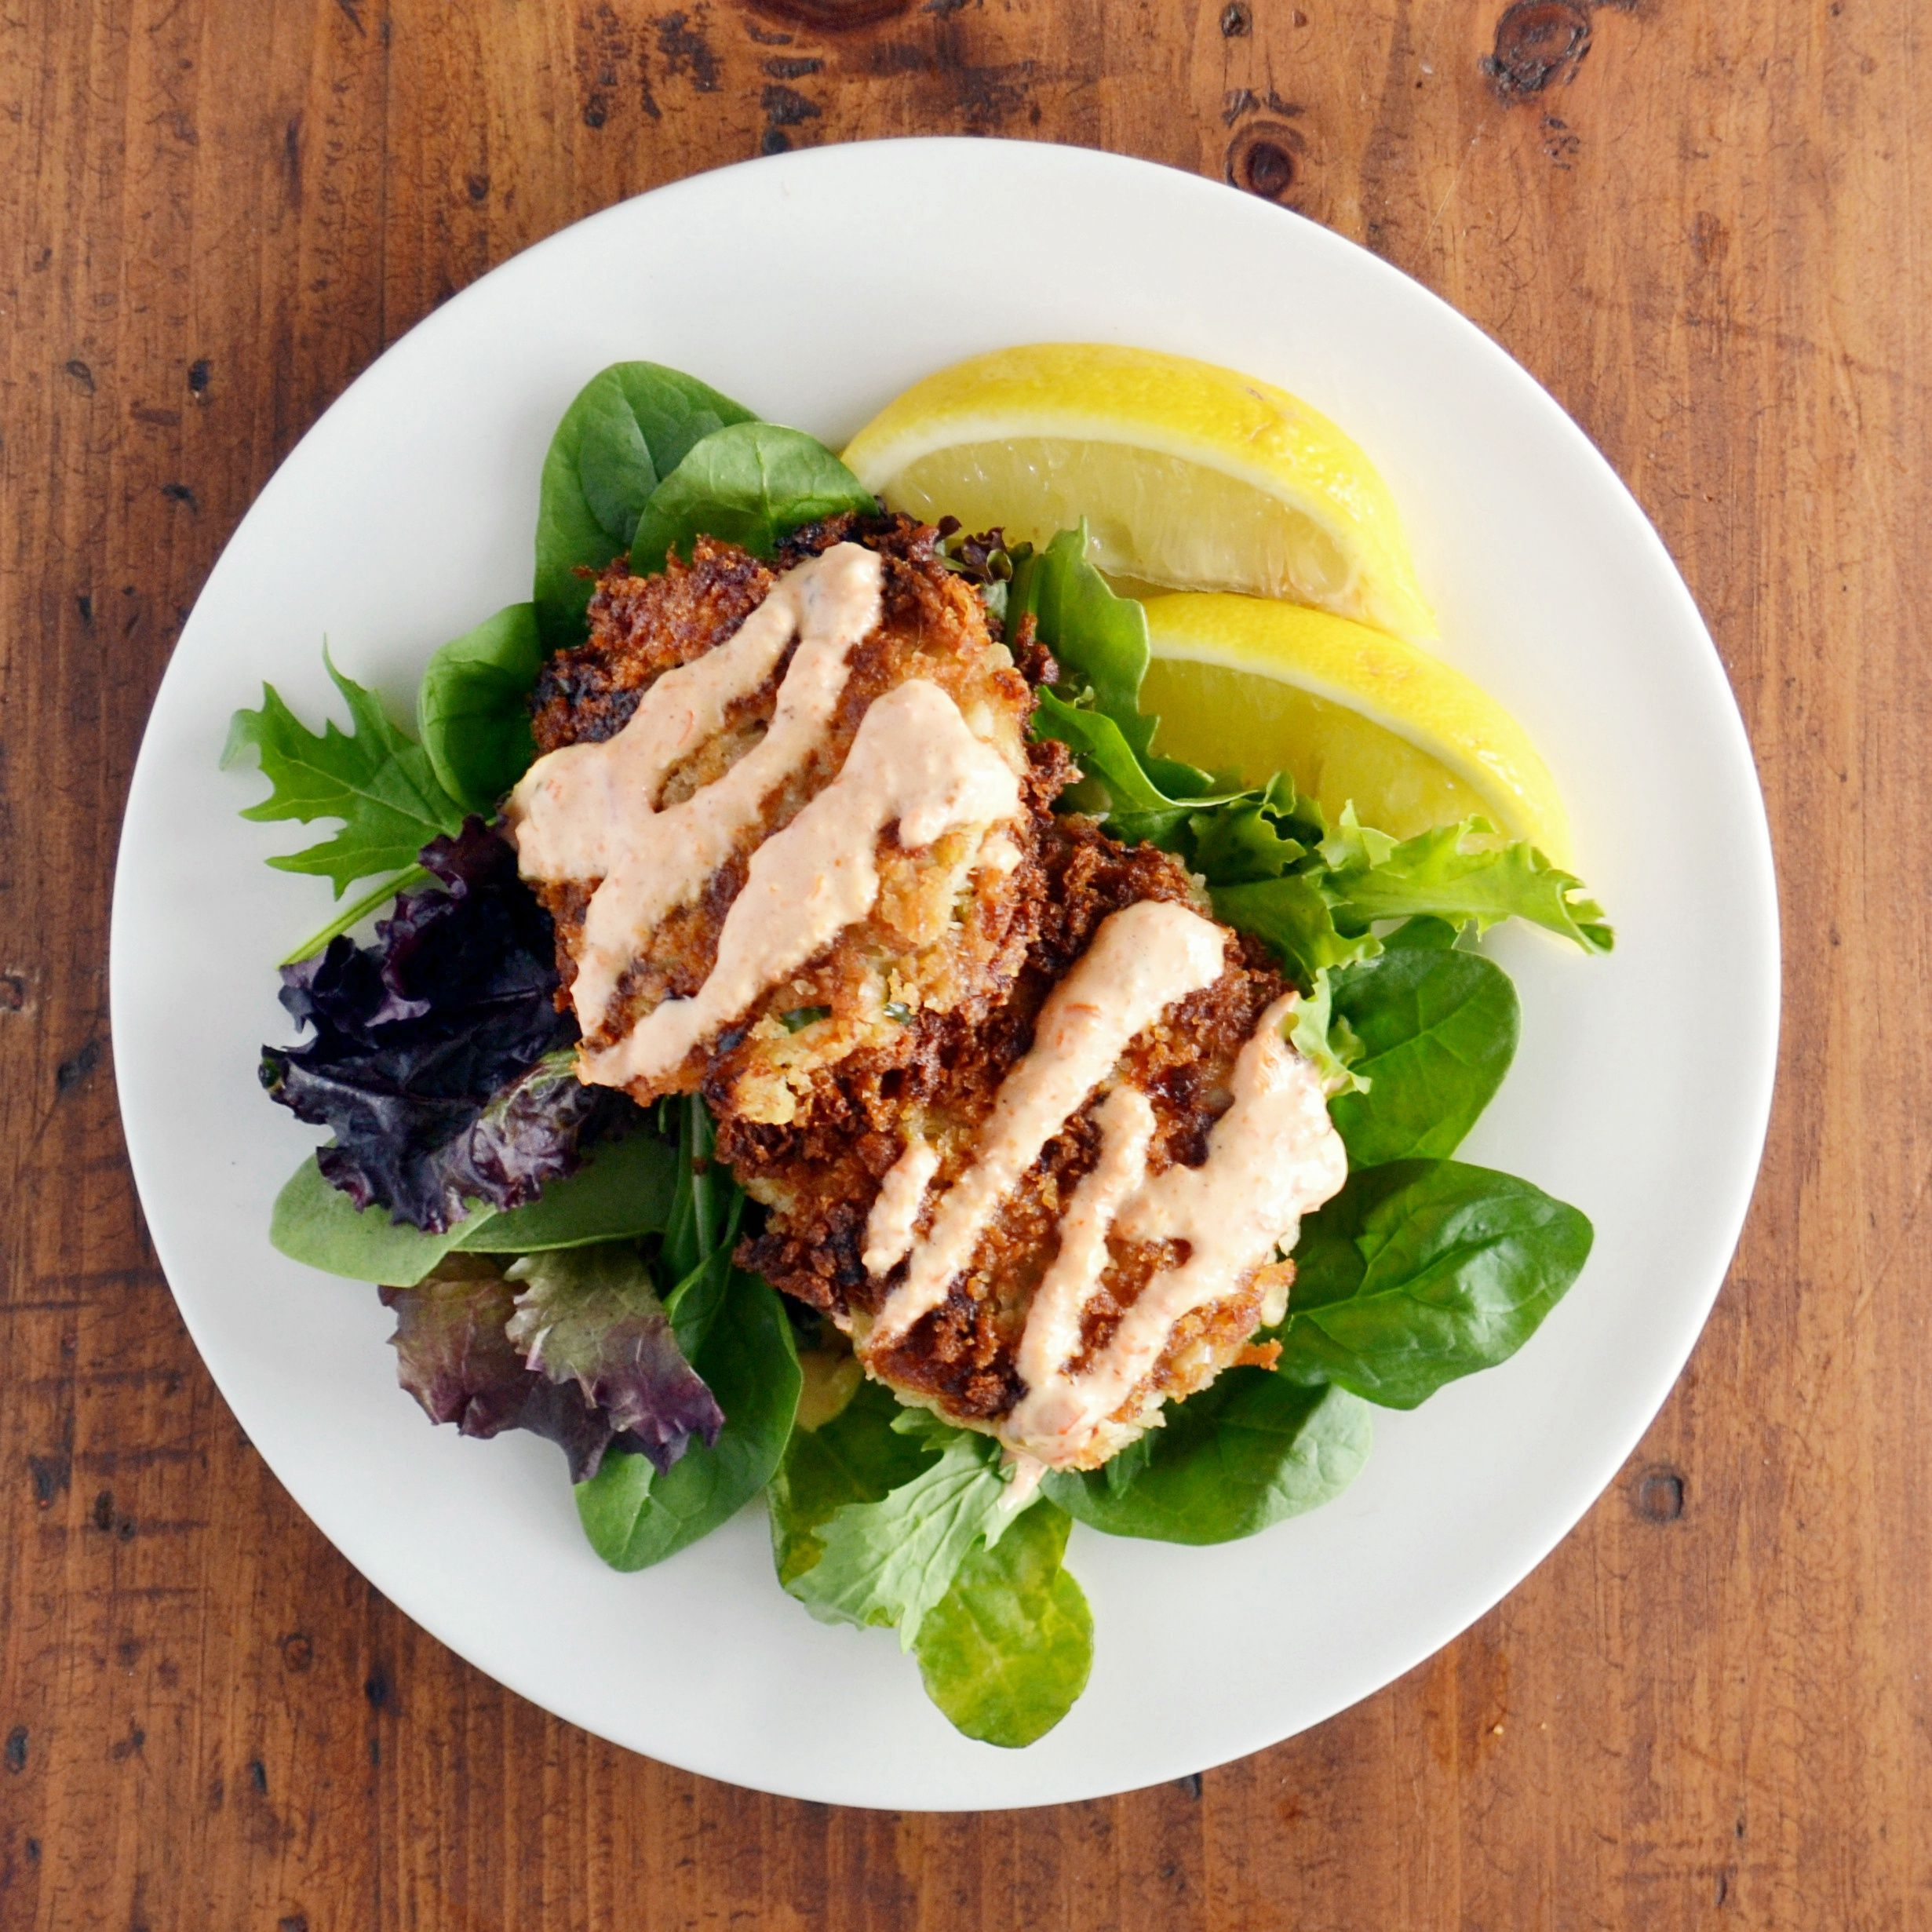 Crispy crab cakes with roasted red pepper garlic aioli